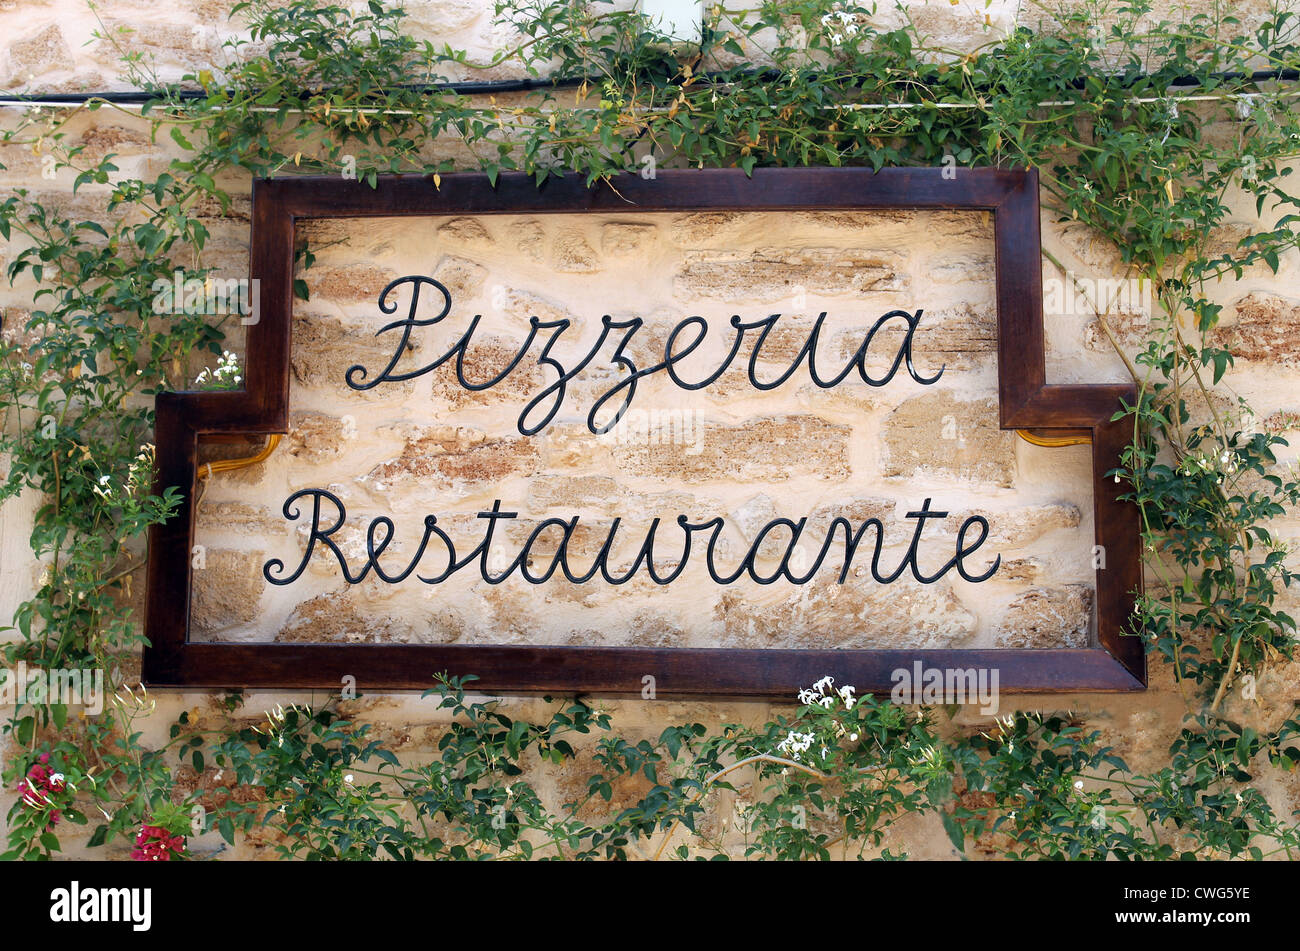 Pizzeria restuarant sign on old wall surrounded by ivy, Italian or Spanish. - Stock Image